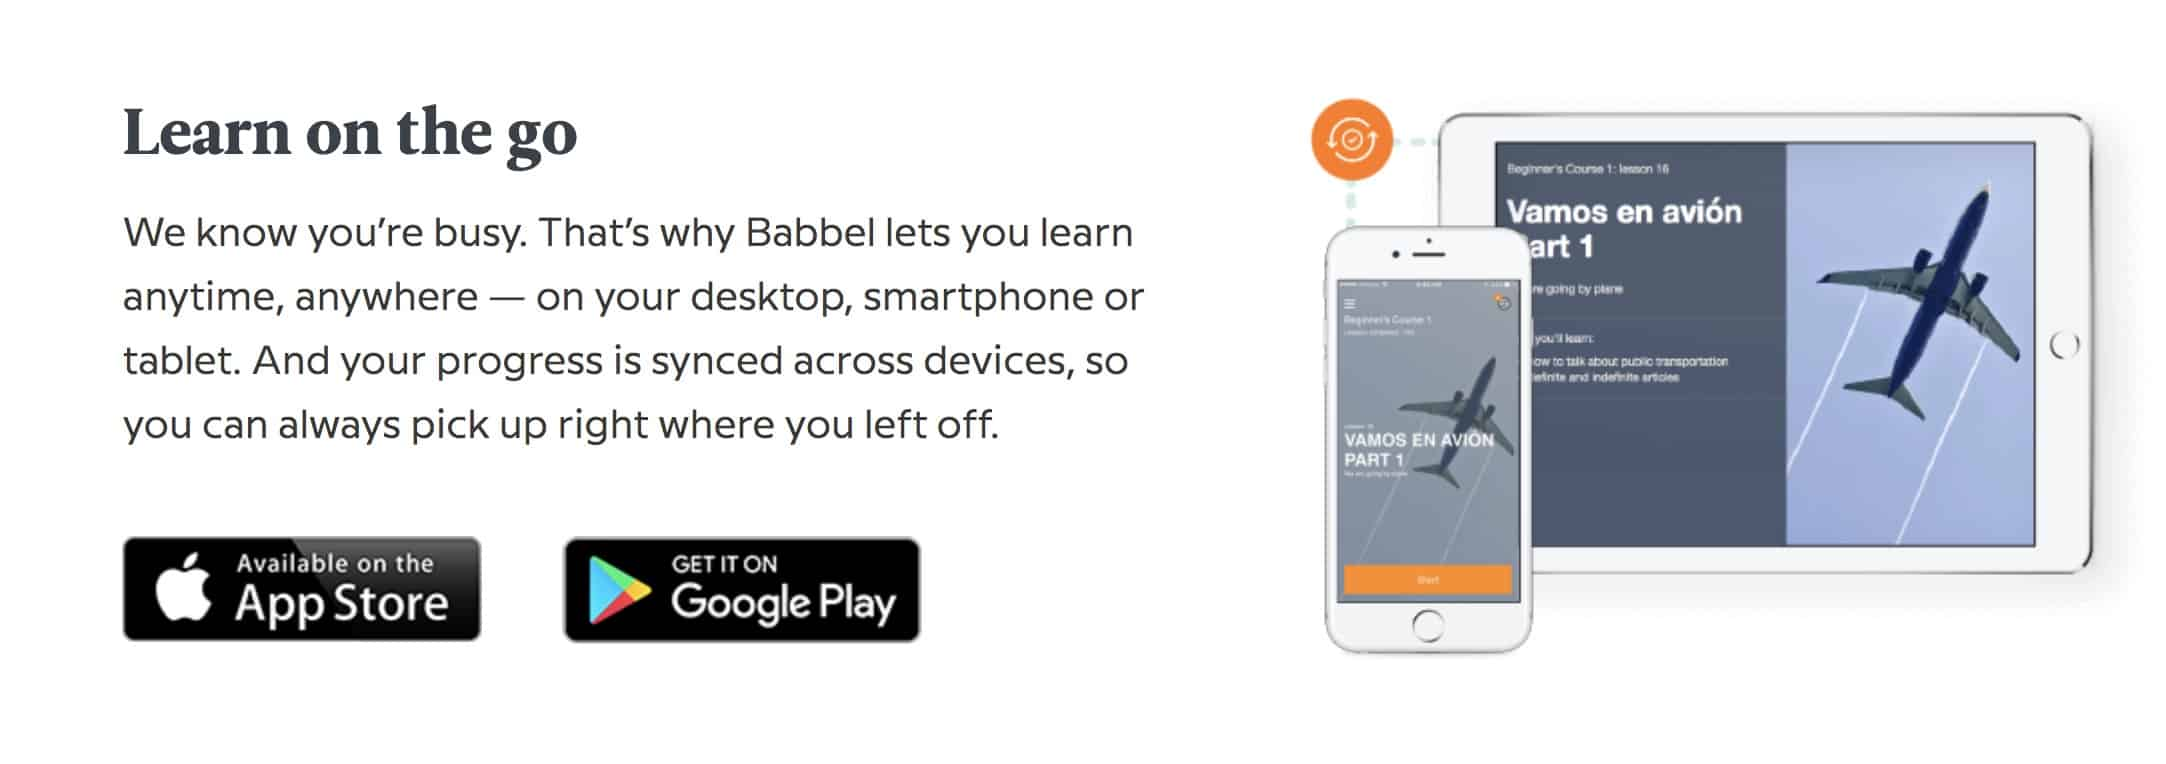 Www babbel com coupons new